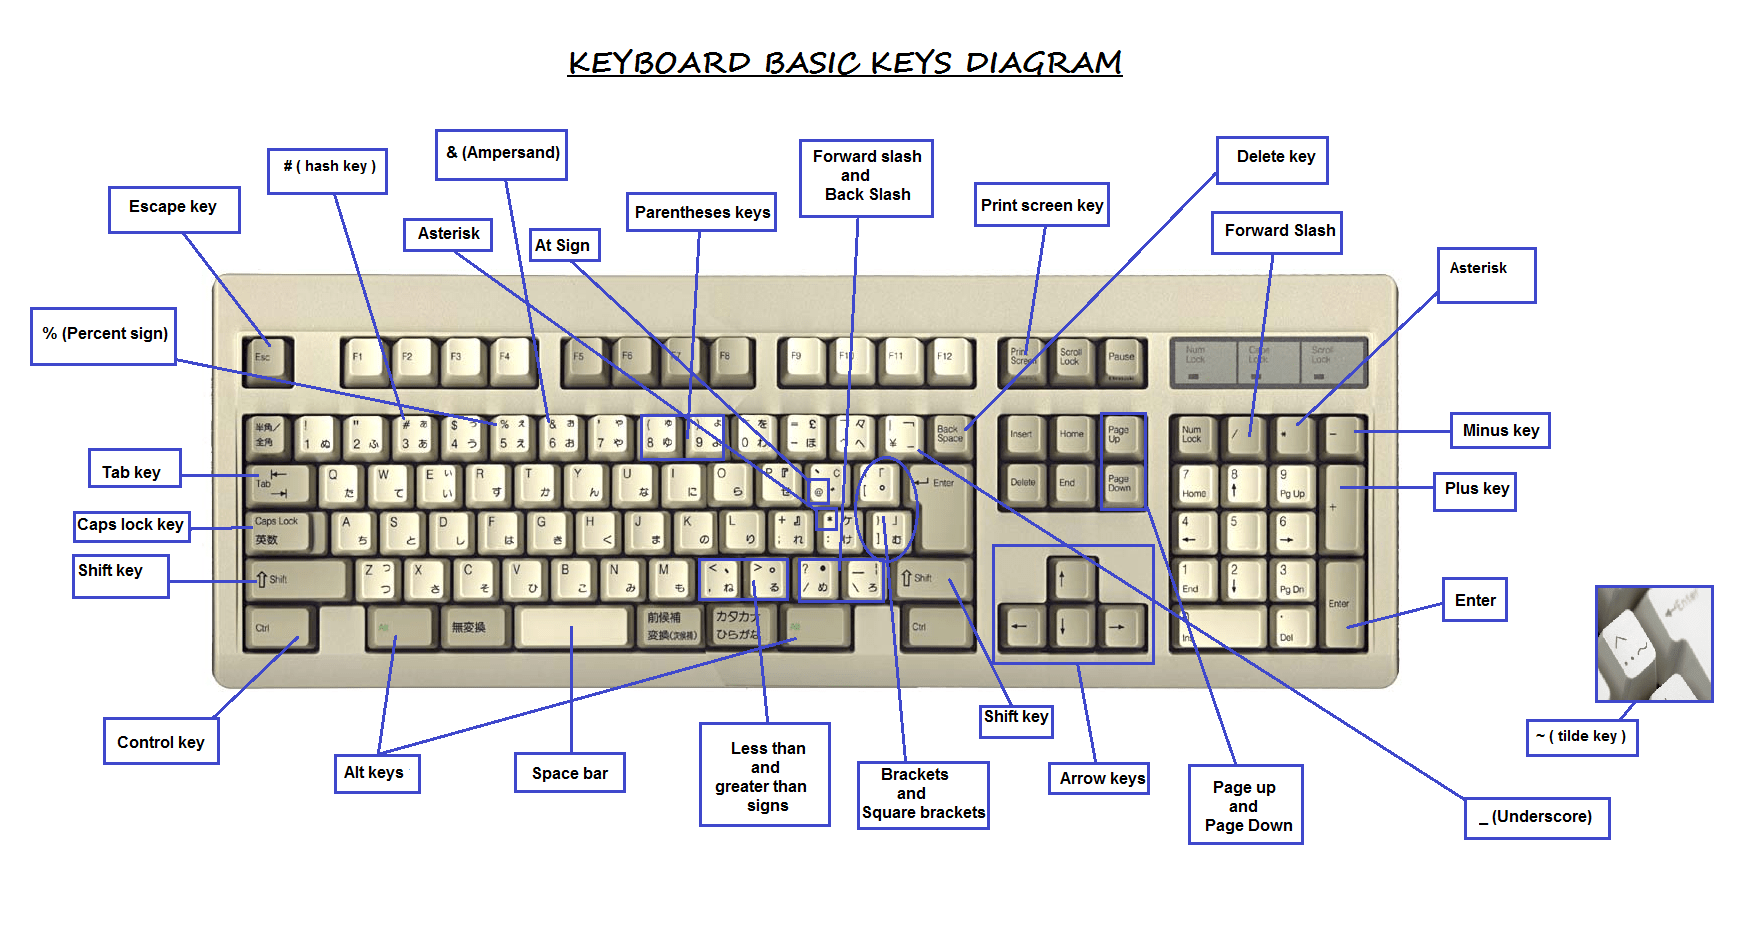 hight resolution of keyboard diagram and key definitions